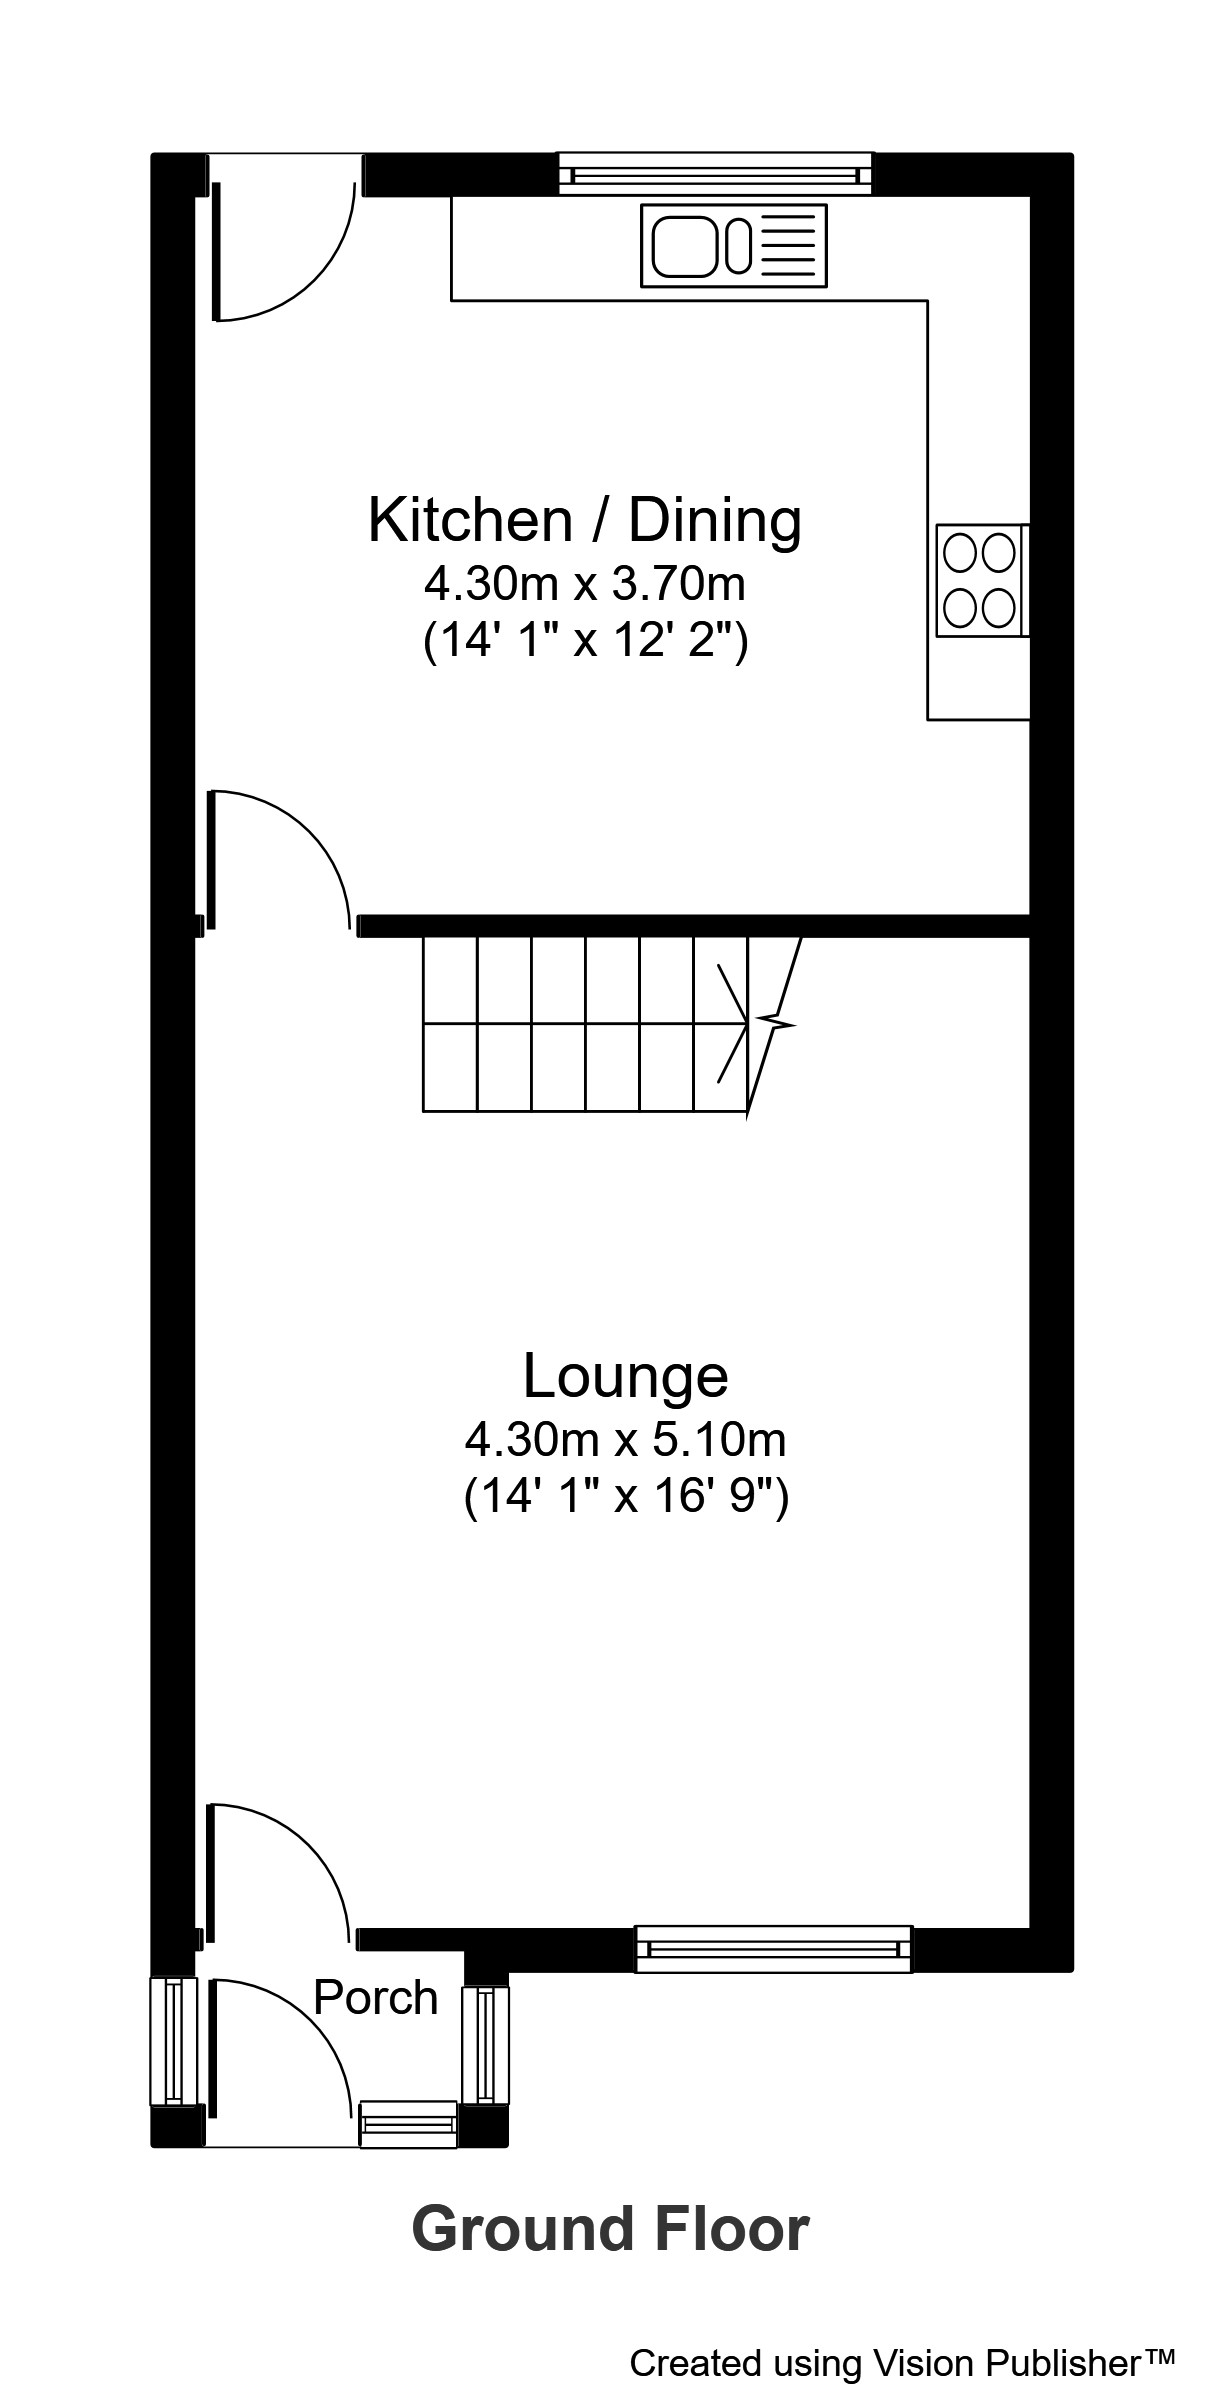 11 pleasant view Floor Plans (Auto Sized) (1)